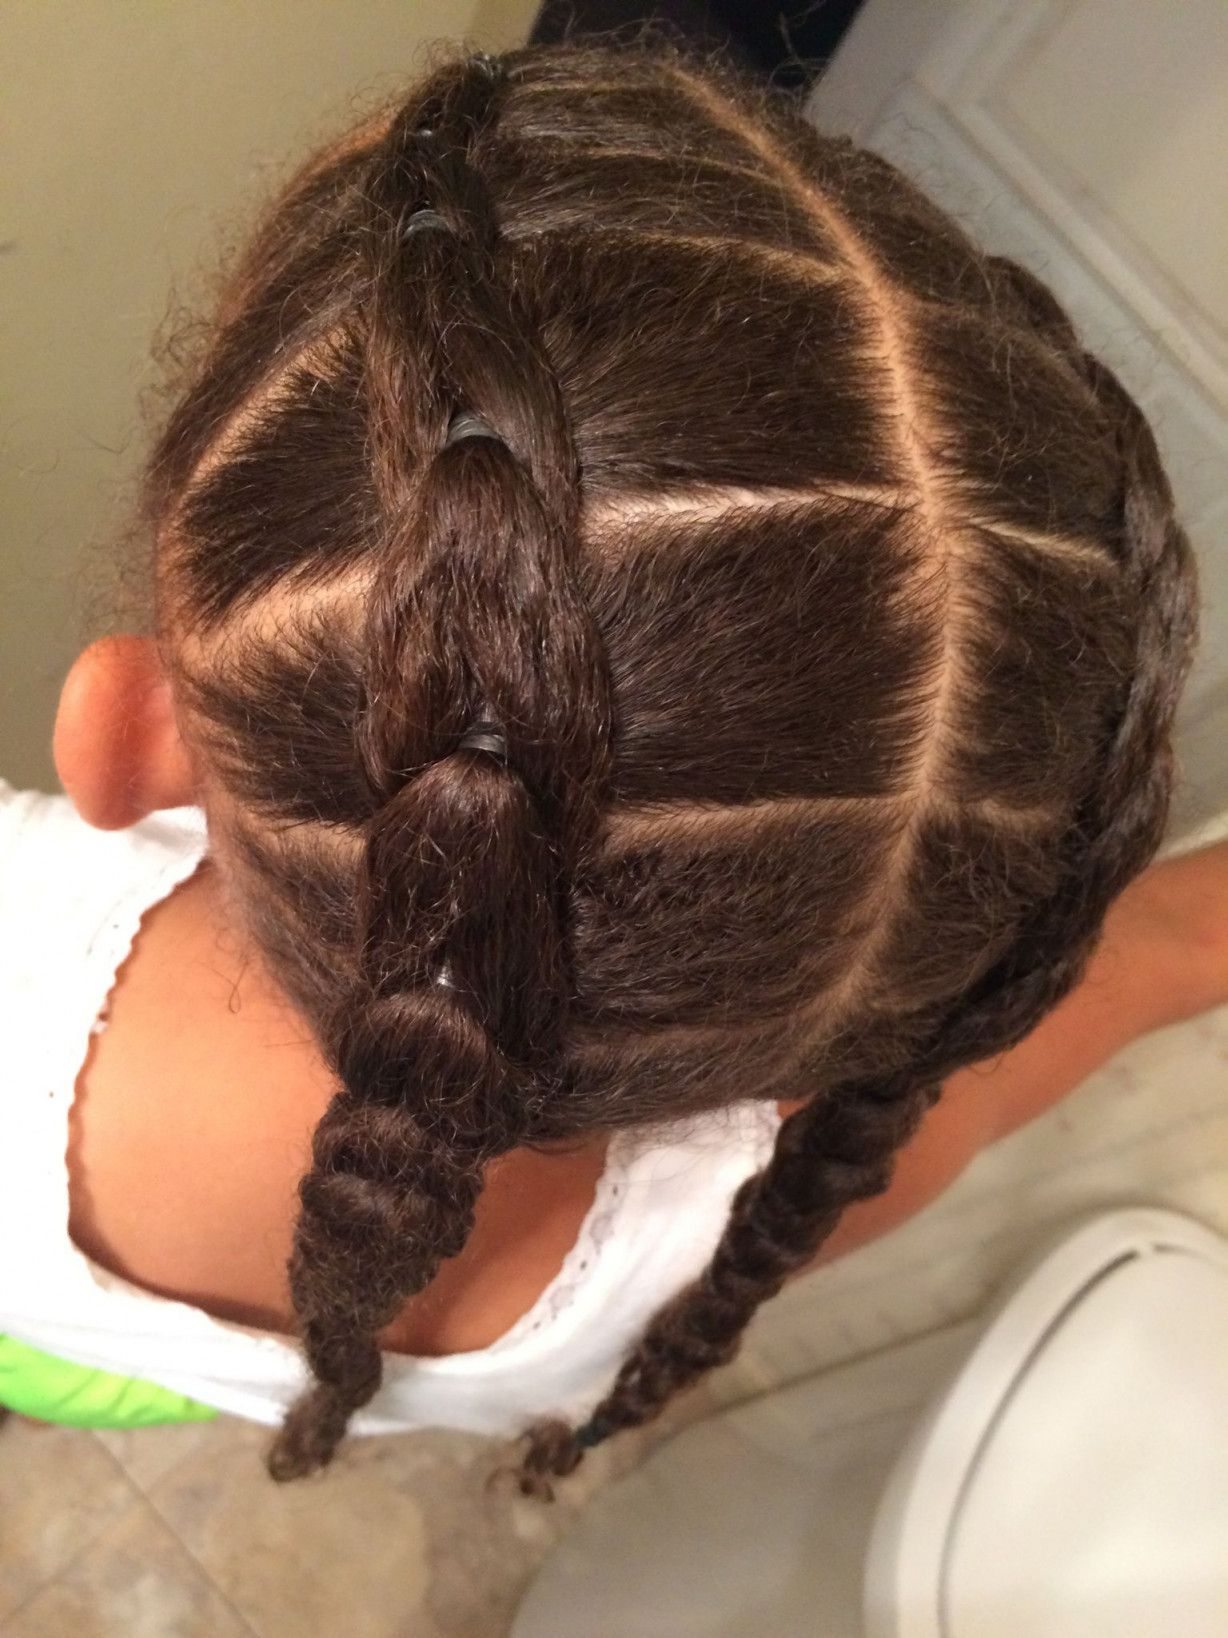 202 + Braided Hairstyles For Black Girls